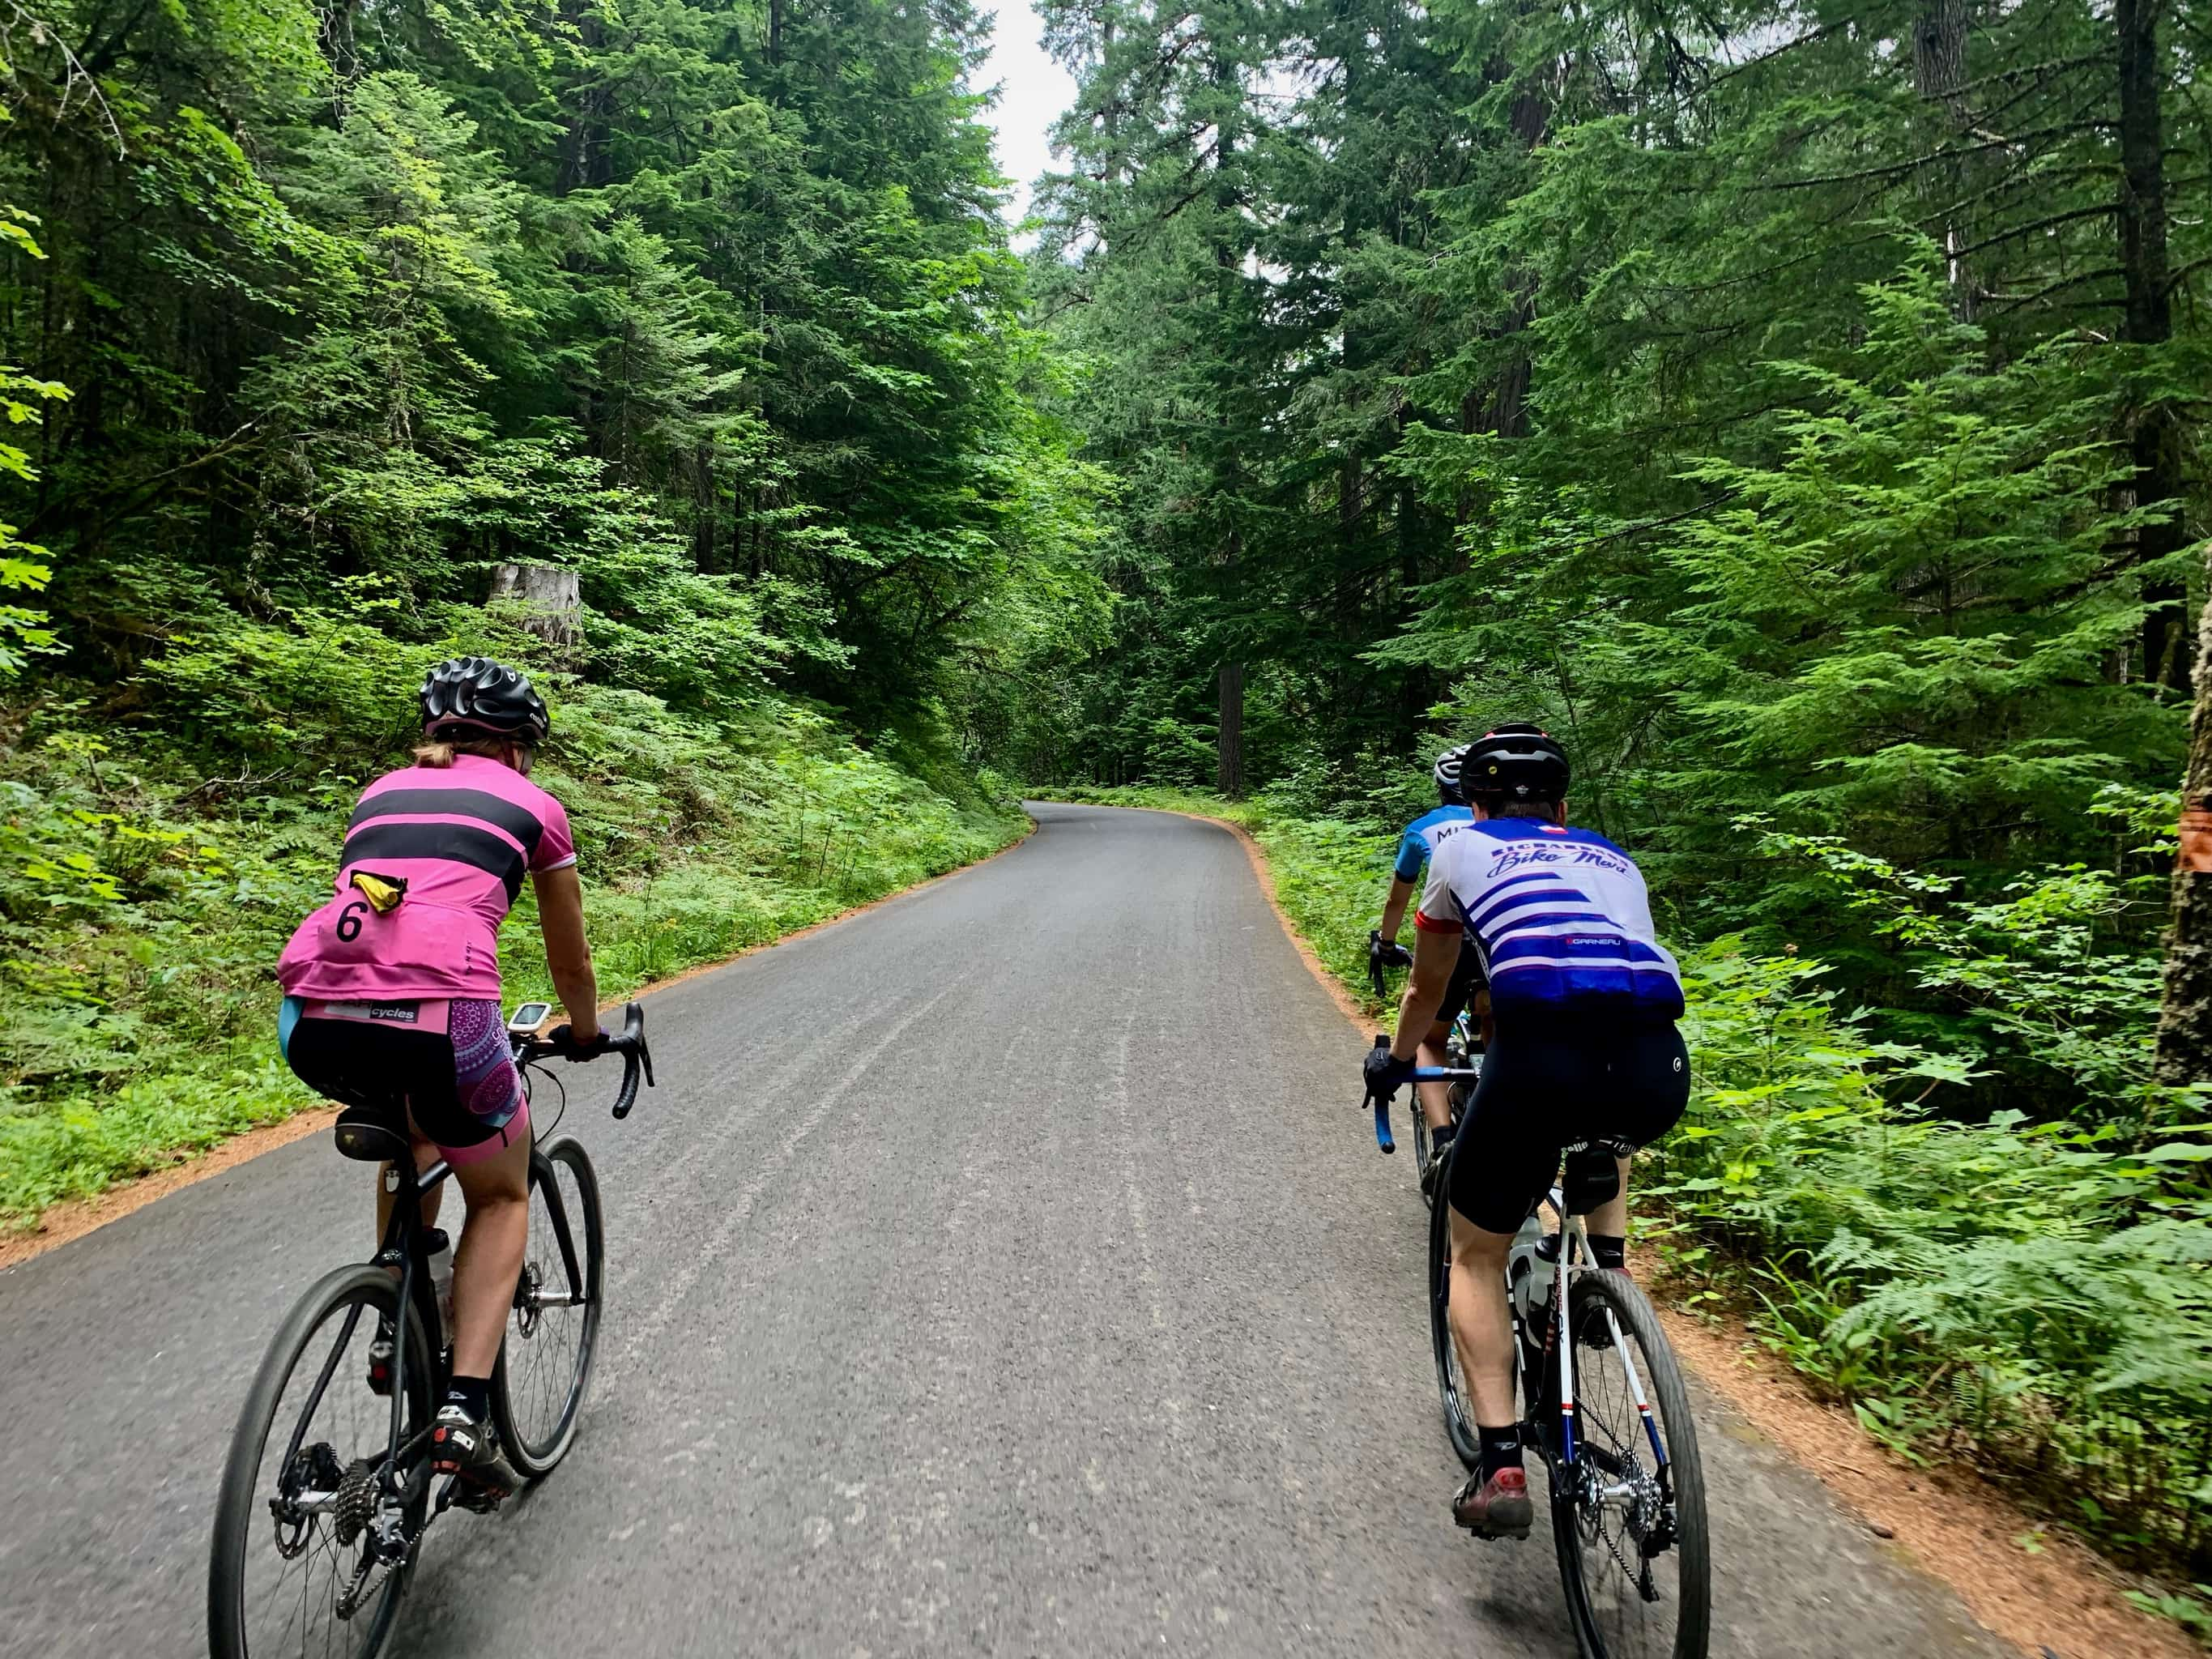 Two cyclists on paved forest service roads near Panther Creek campground in Washington state.